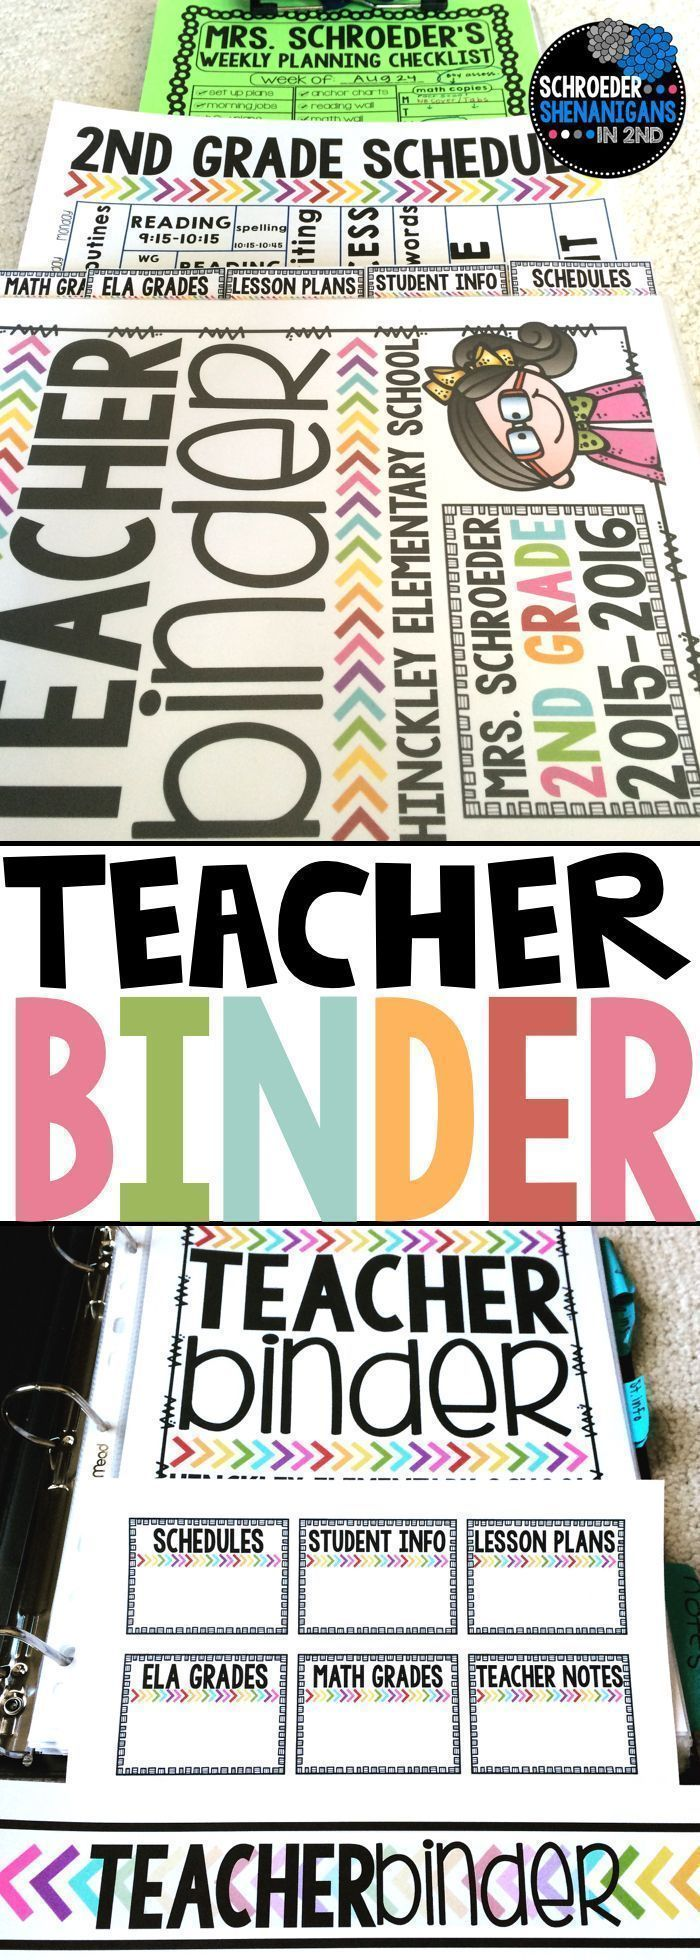 Back to school teacher binder: Organize yourself for back to school with this editable teacher binder that includes dismissal lists, schedule templates, birthday lists, binder covers, tabs, newsletter template, and more!